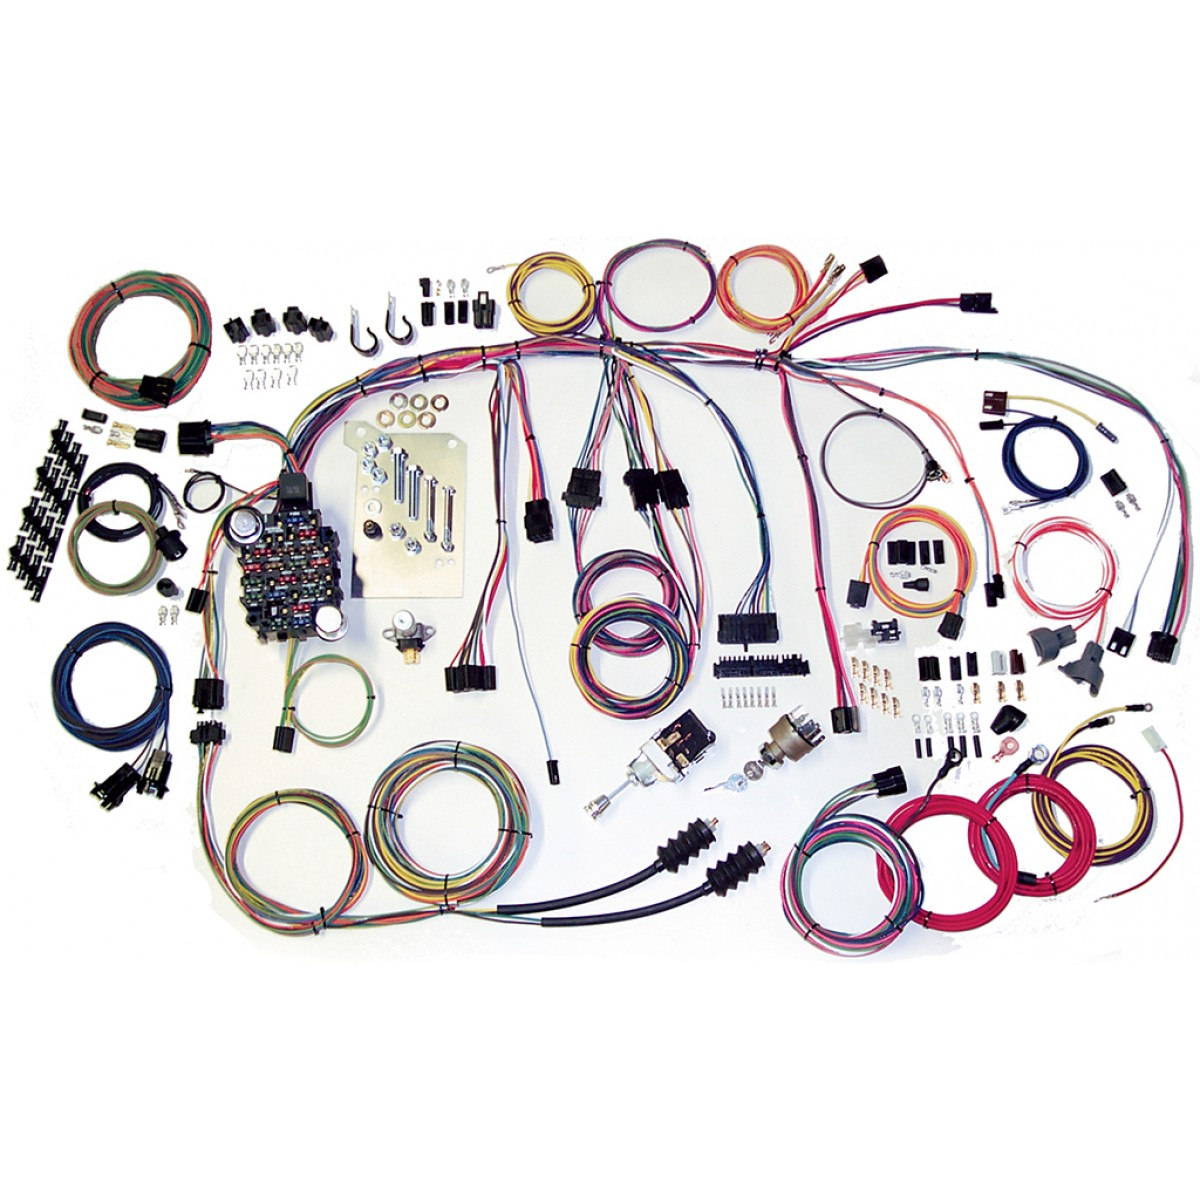 1966 Chevy Wire Harness Wiring Diagram Schemes Porsche C10 Complete Kit 1960 Car